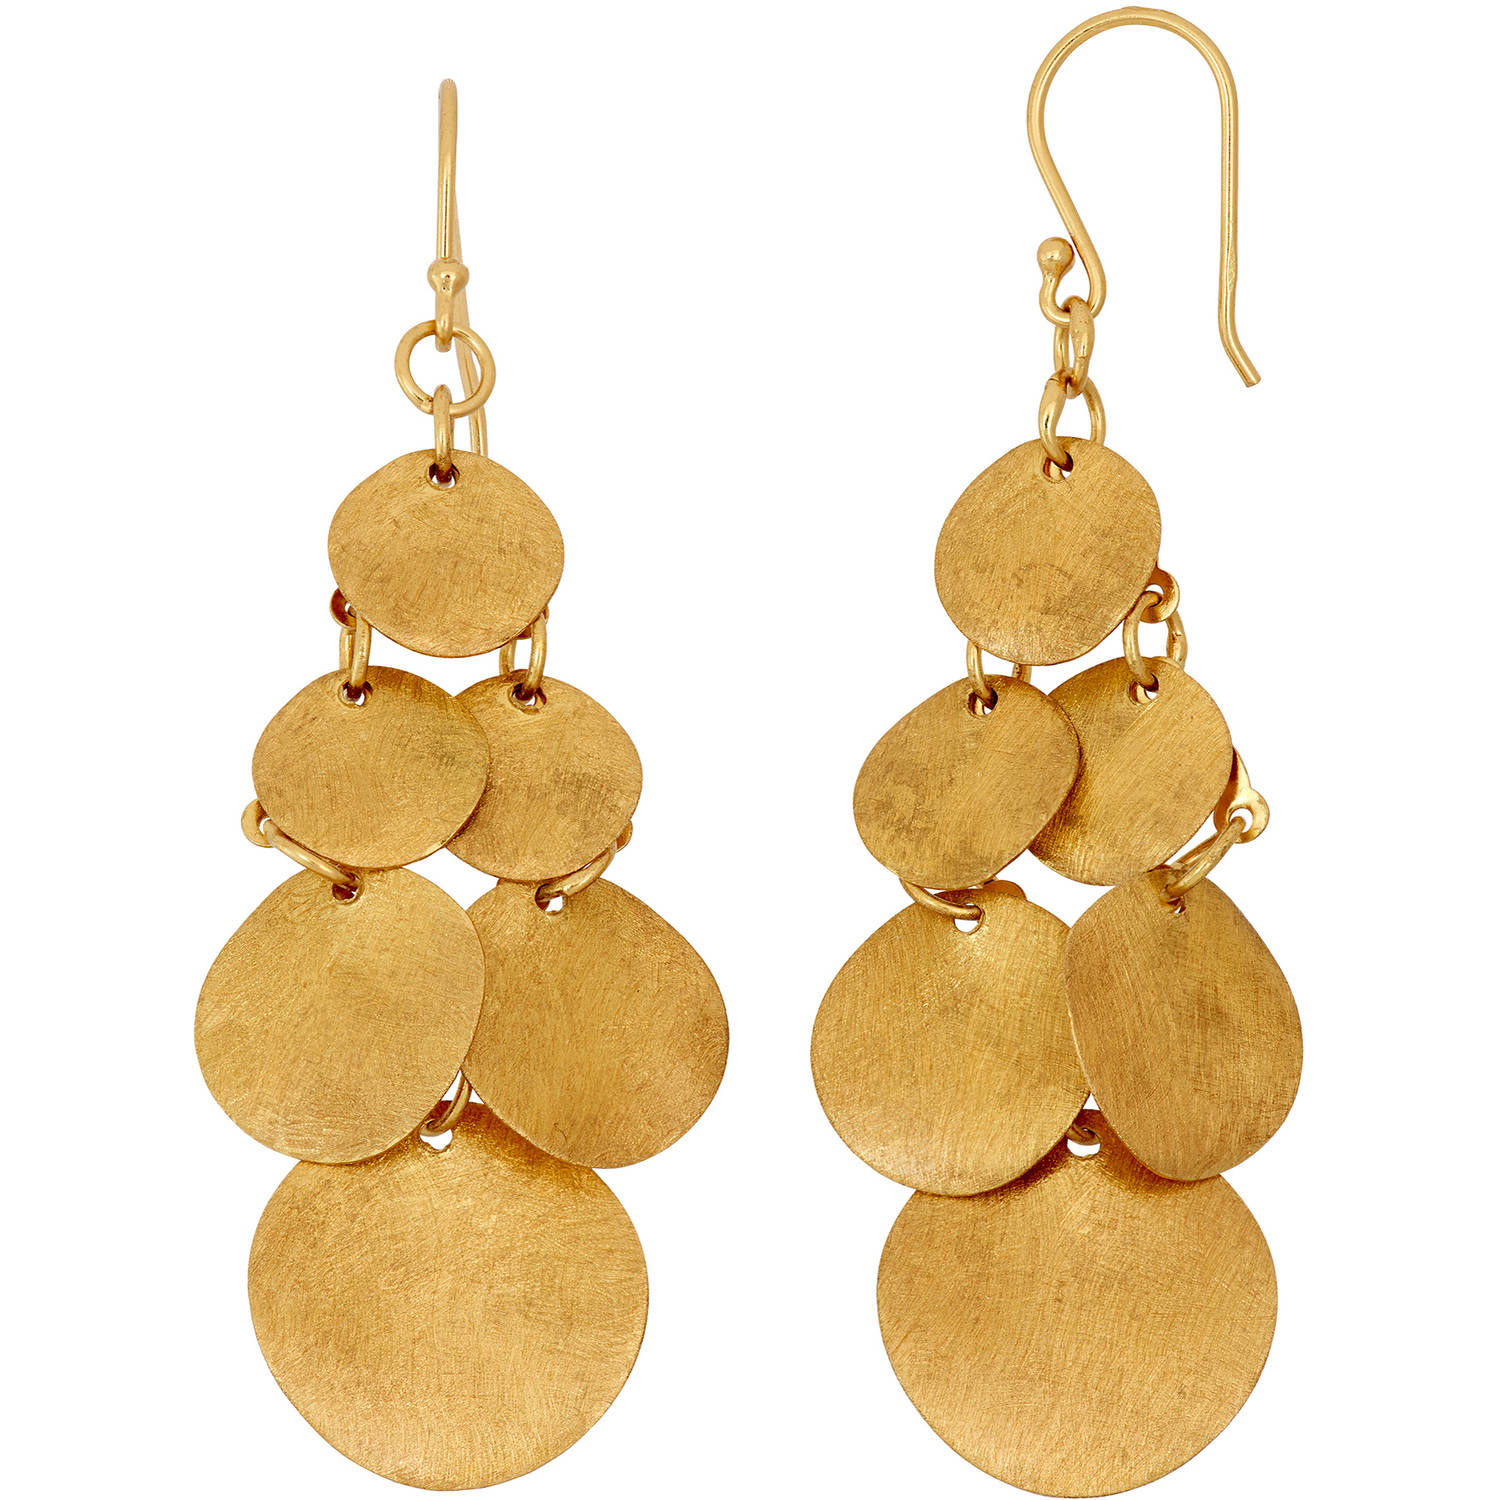 Image of 5th & Main 14kt Gold-Plated Circle Drop Gypsy Earrings with Satin Finish